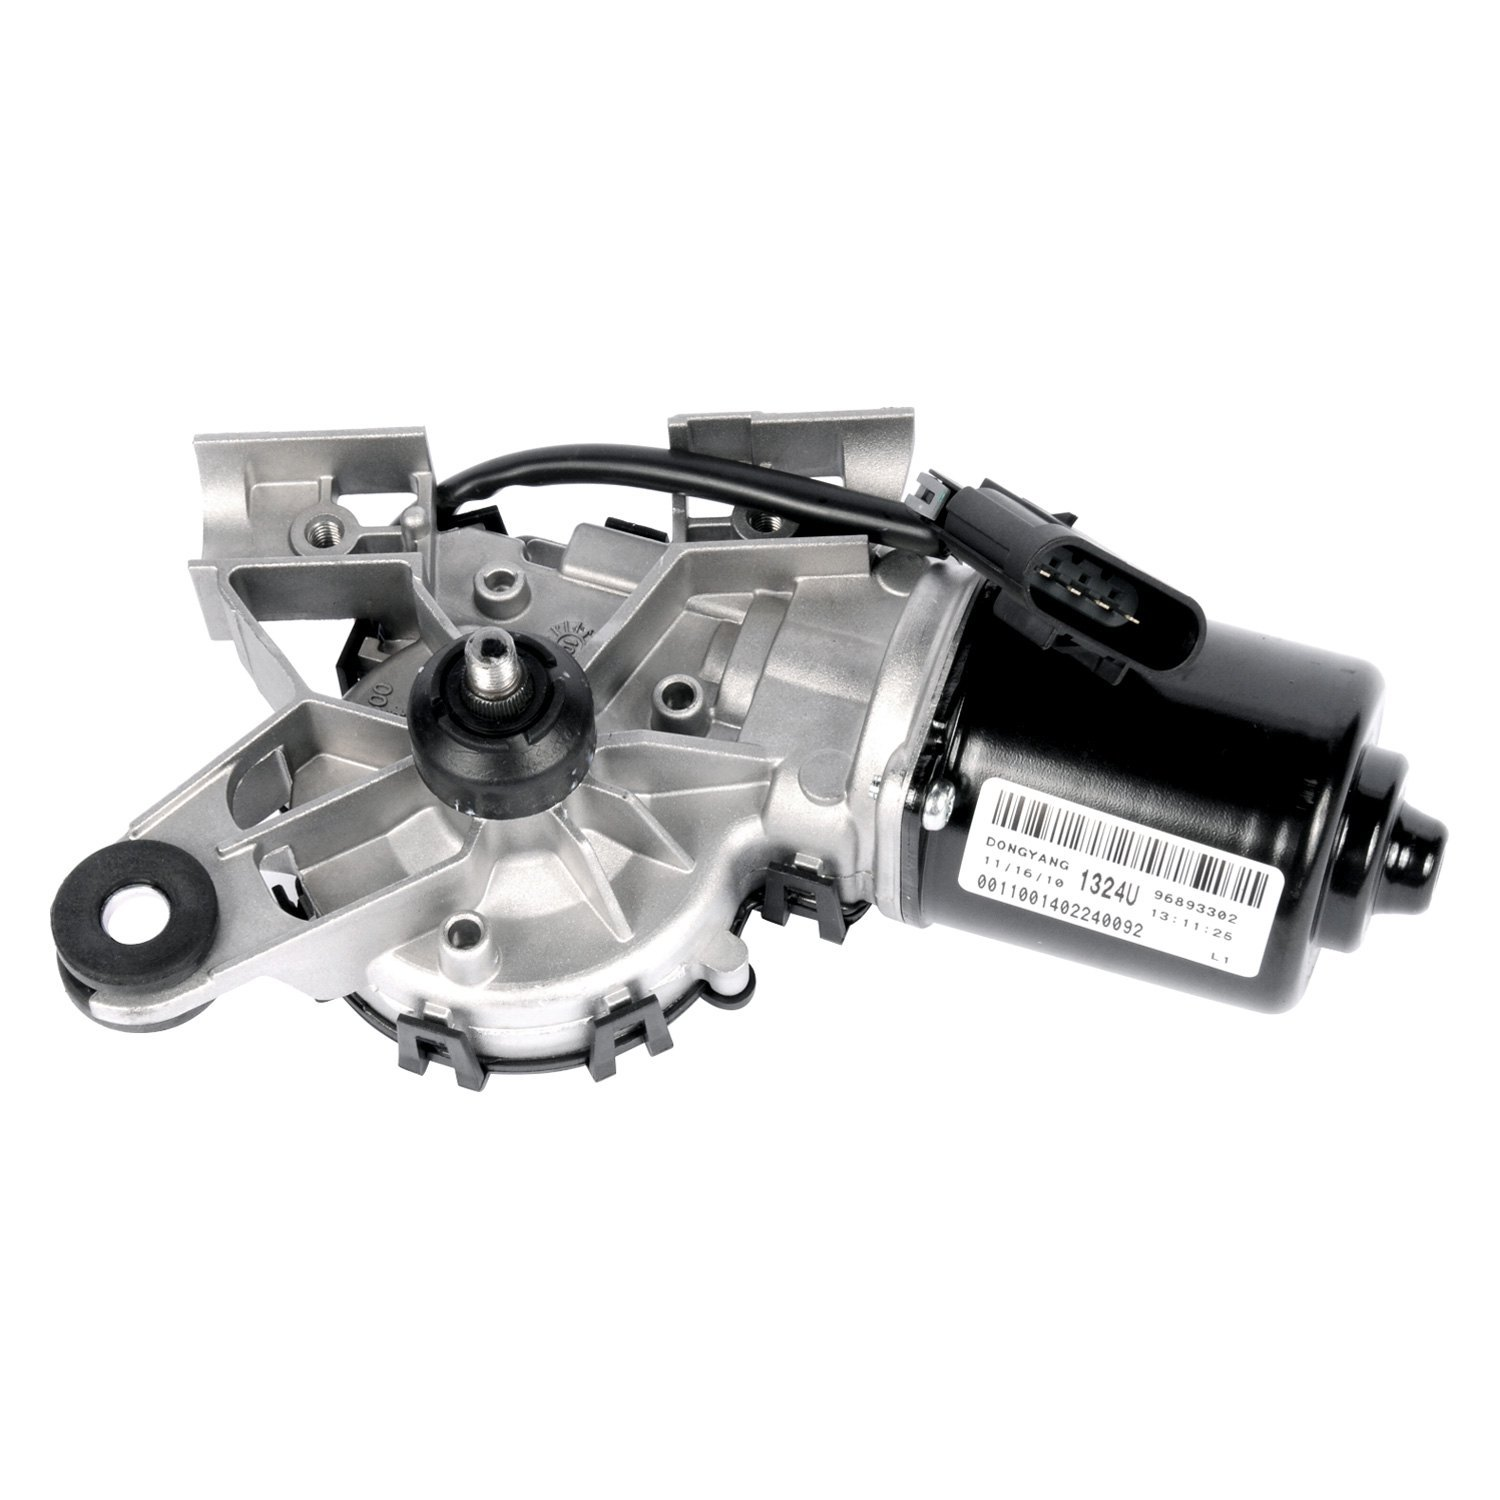 Windshield wiper motor cost for Windshield motor replacement cost